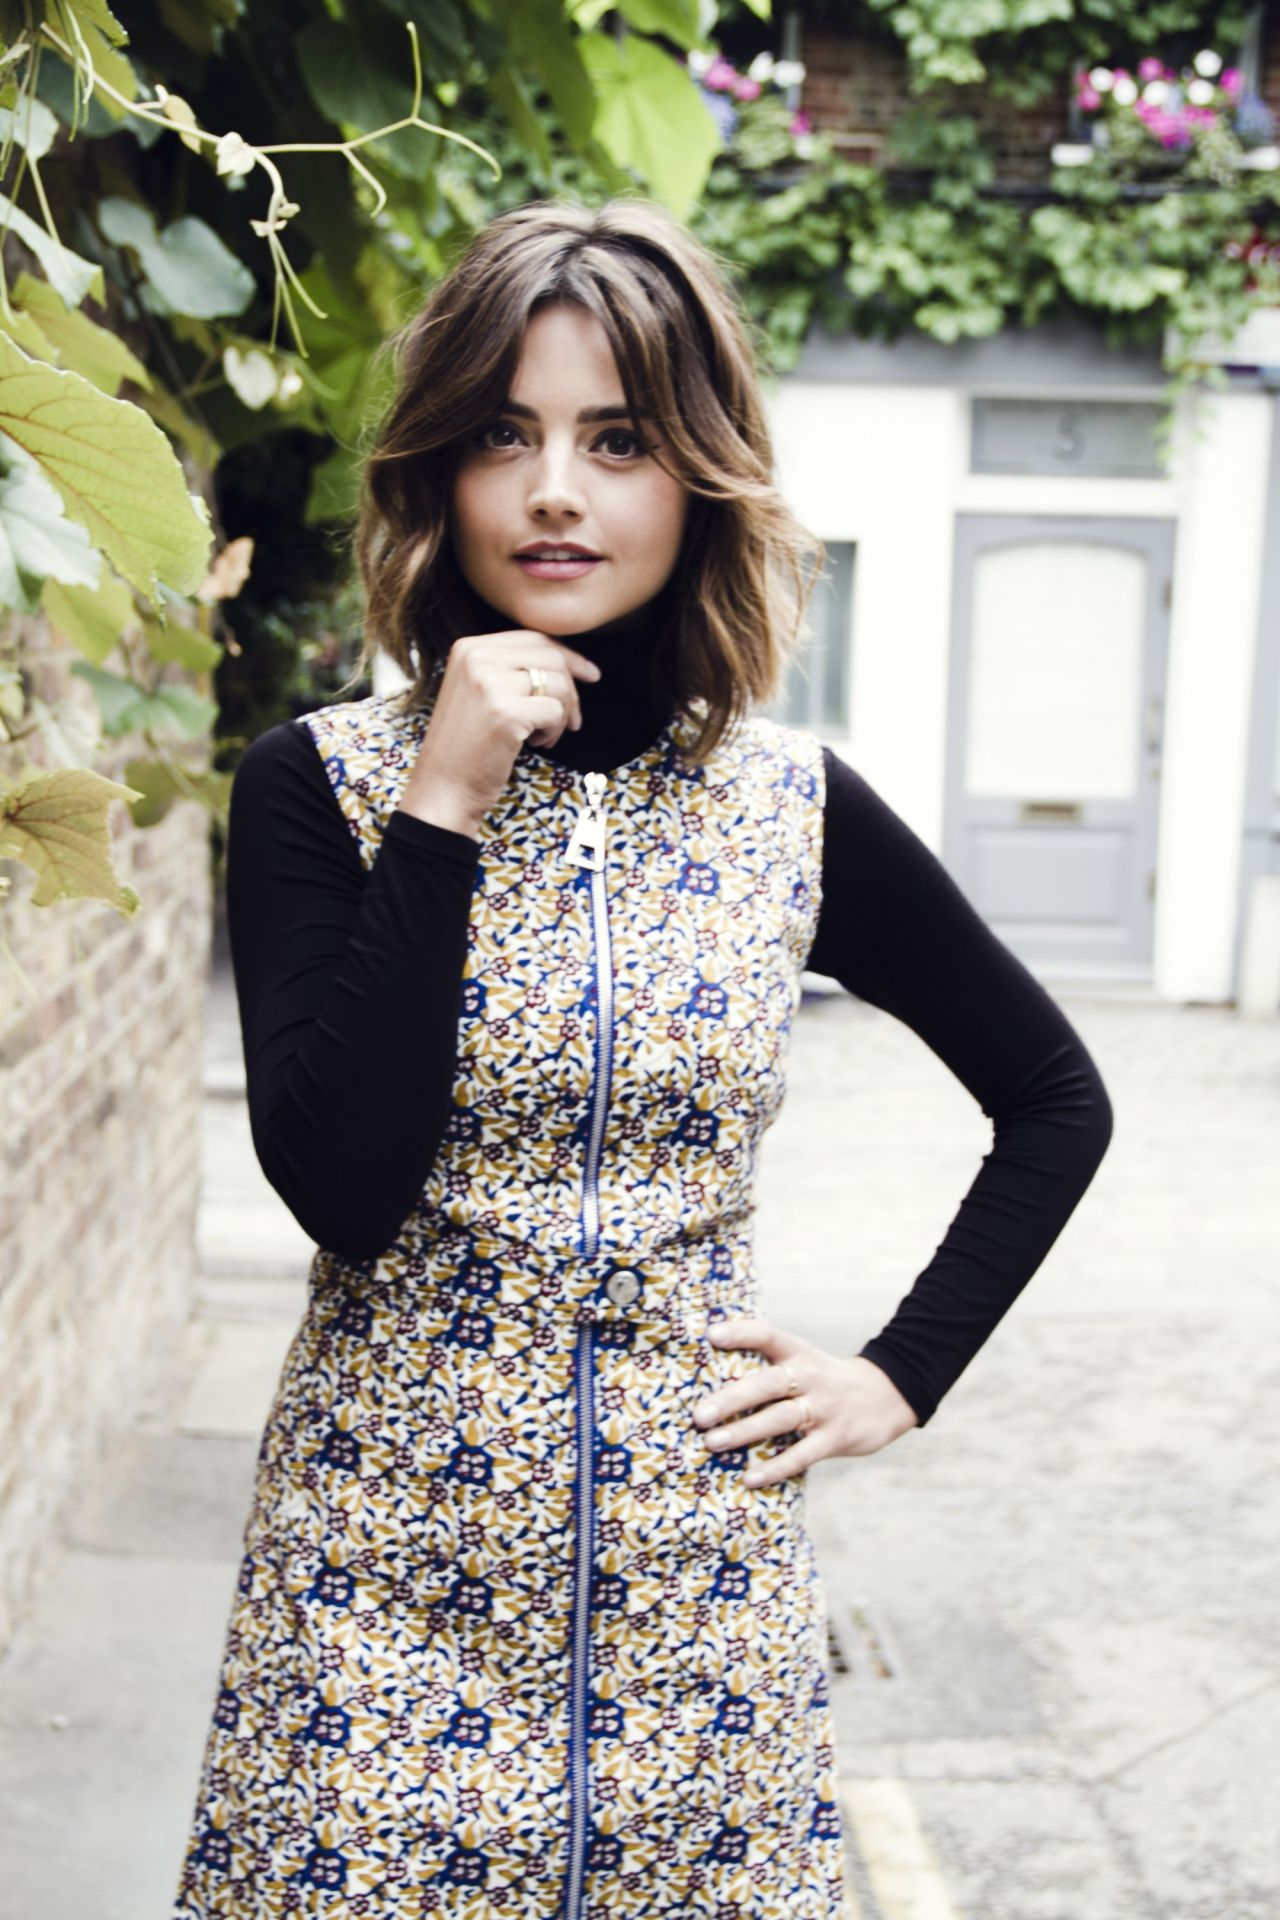 Jenna Coleman Latest Photos Celebmafia